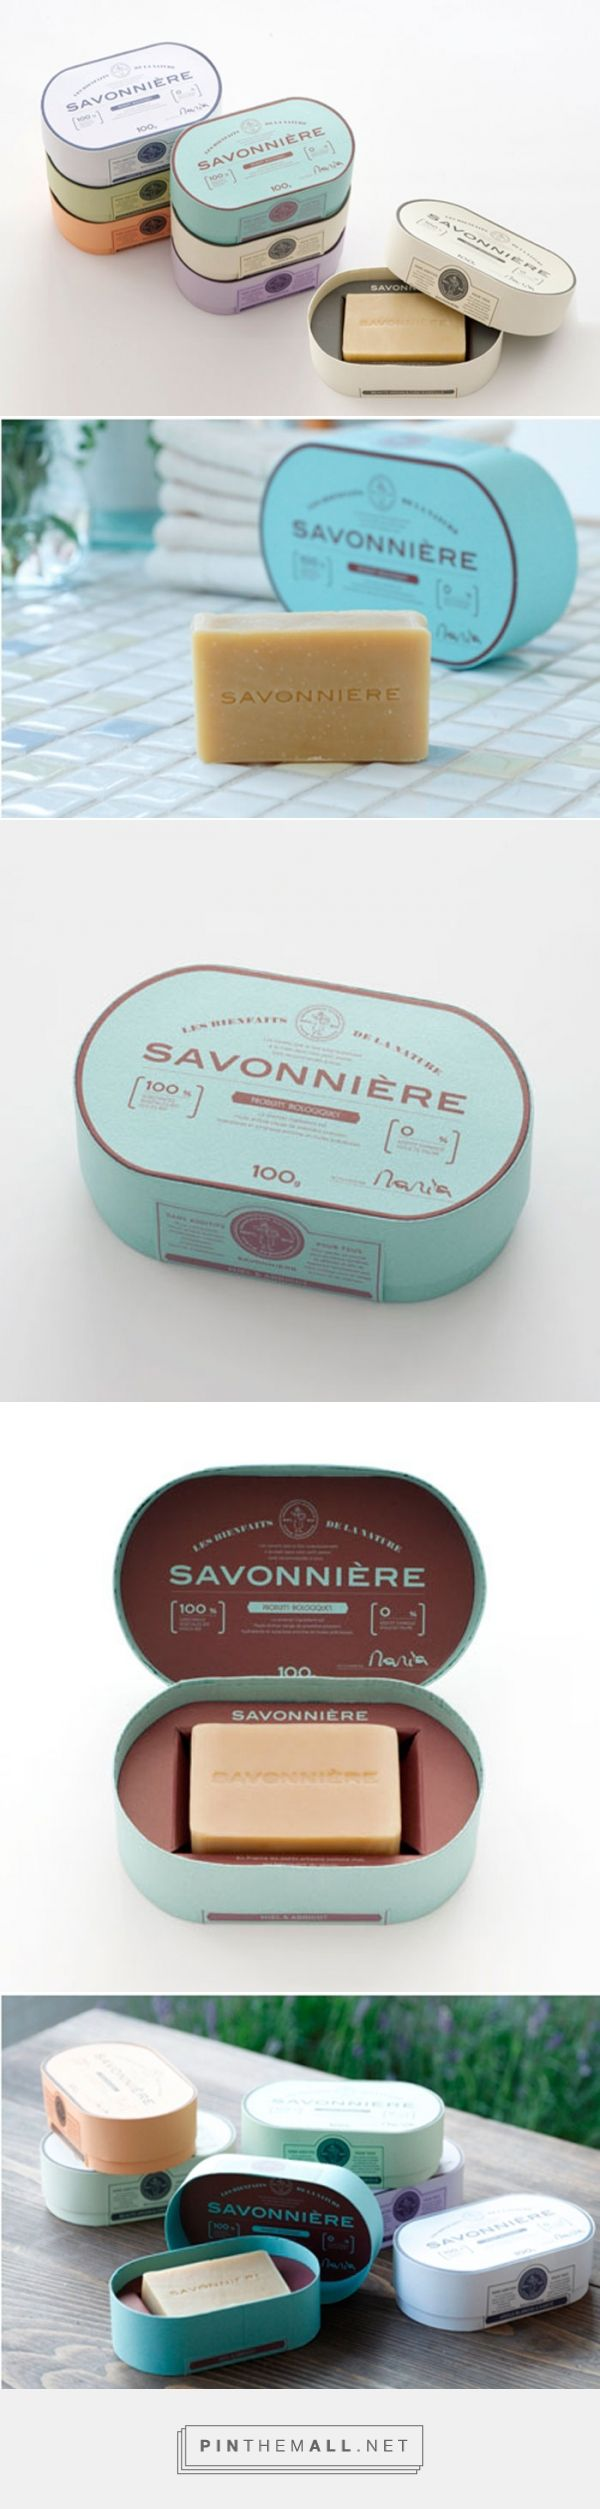 http://www.thedieline.com/blog/2013/2/6/soap-savonniere.html